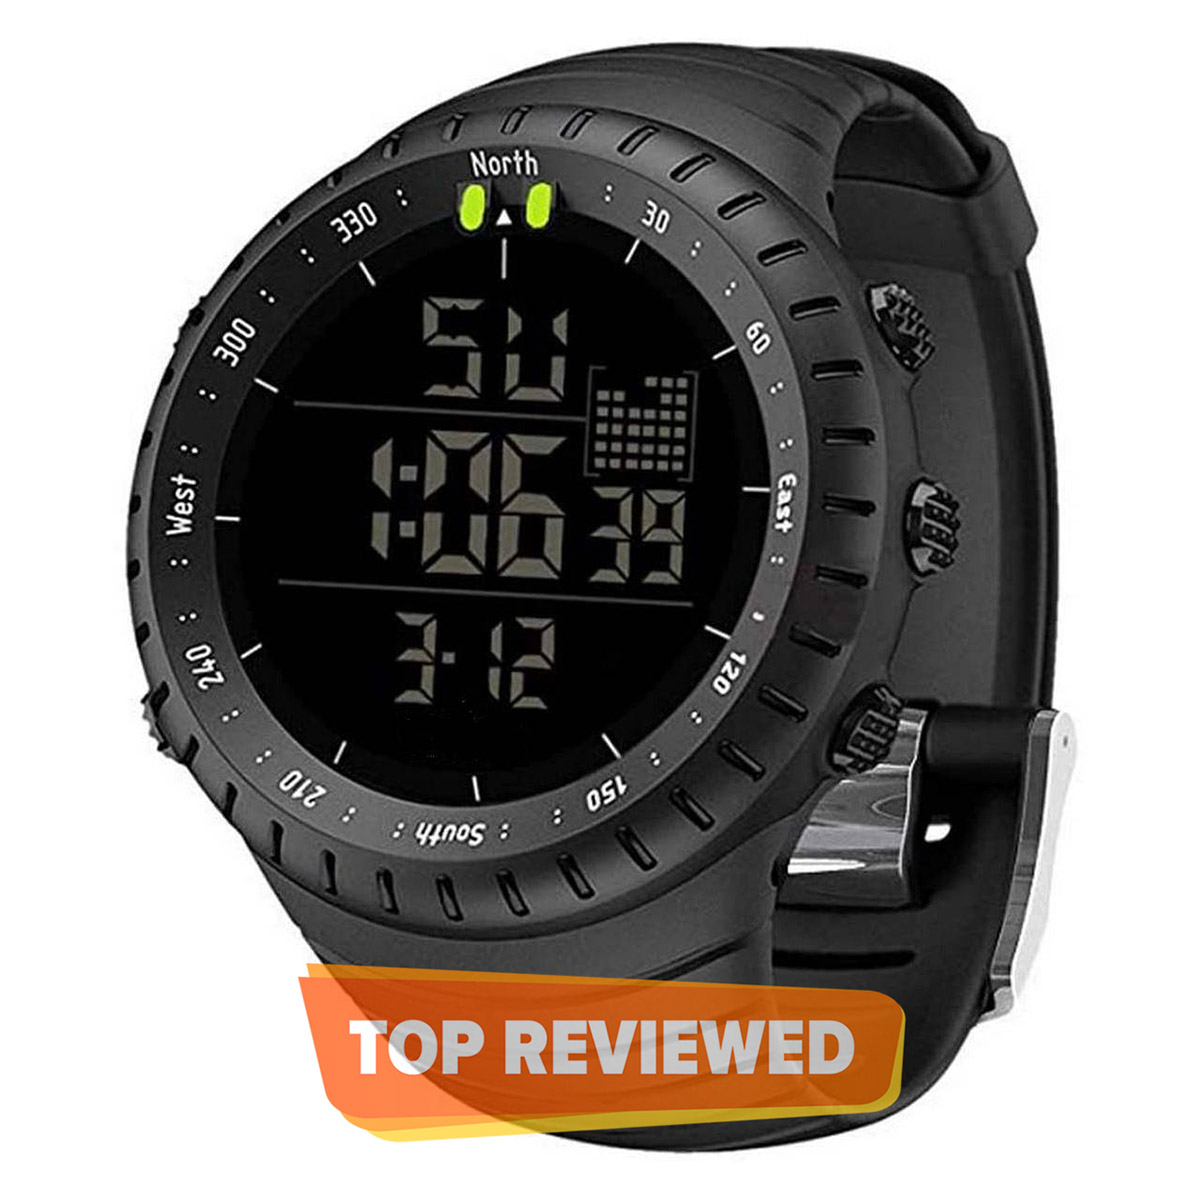 Military Men's Digital Sports Watch Waterproof with LED Back light Watch for Men